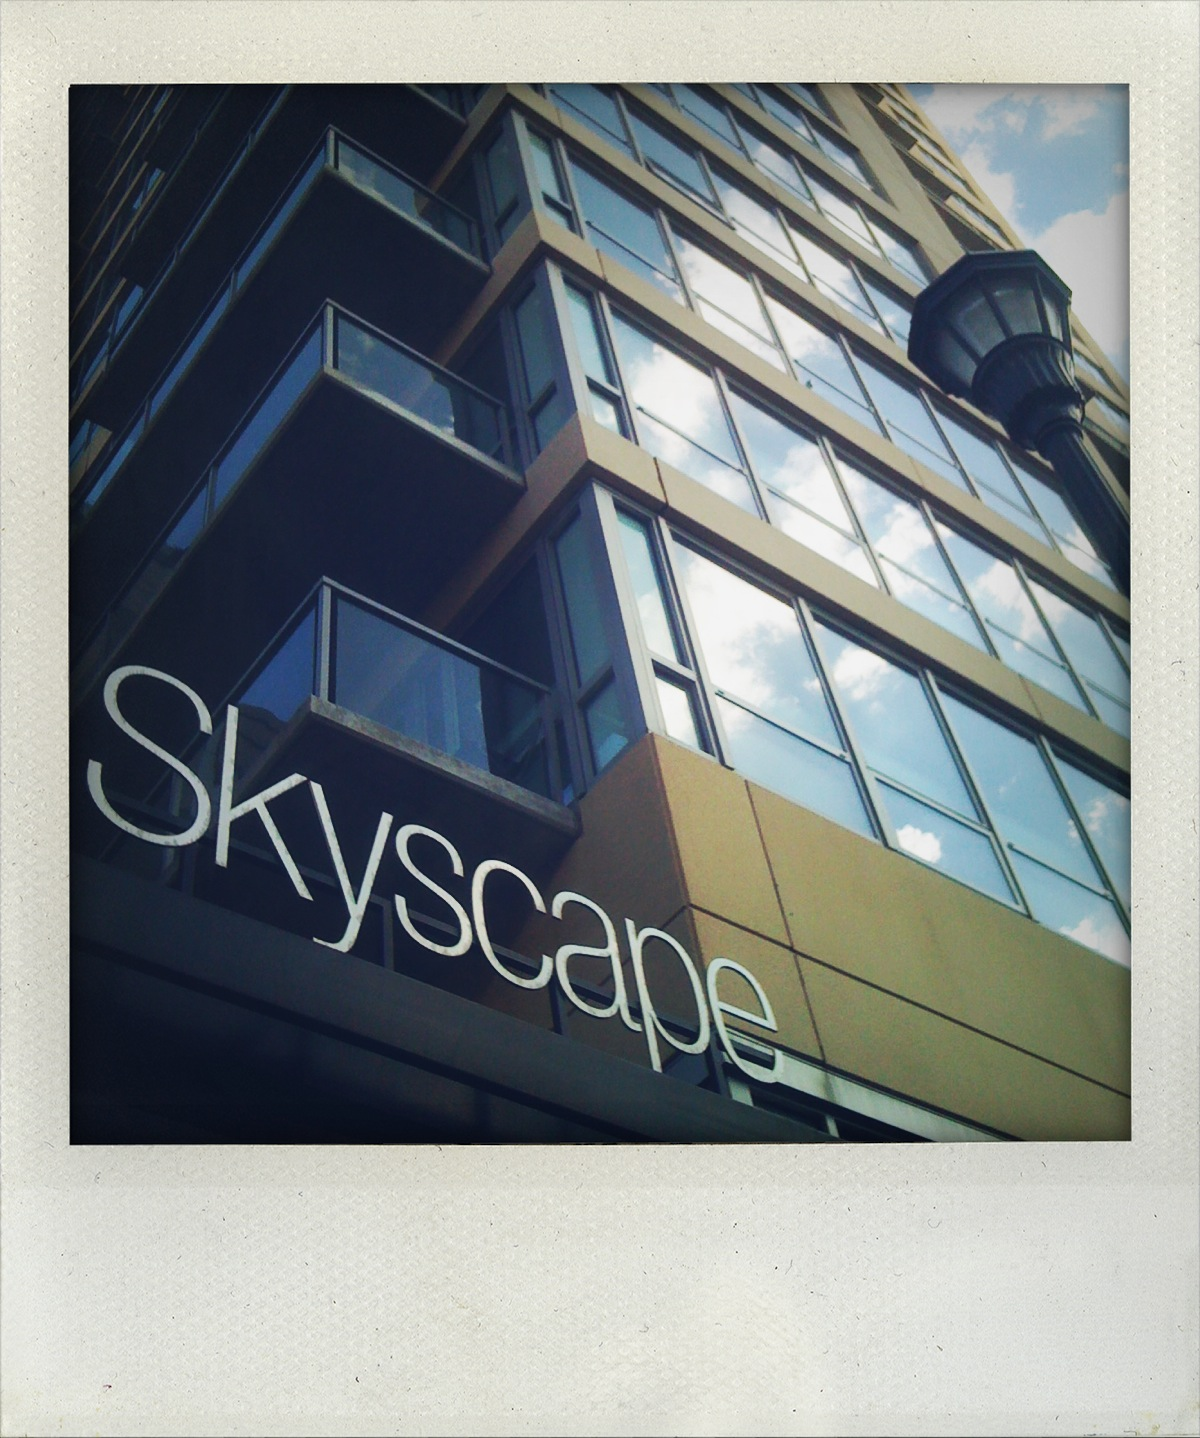 Skyscape Condos | Minneapolis Condos & Minneapolis Real Estate by Ben Ganje